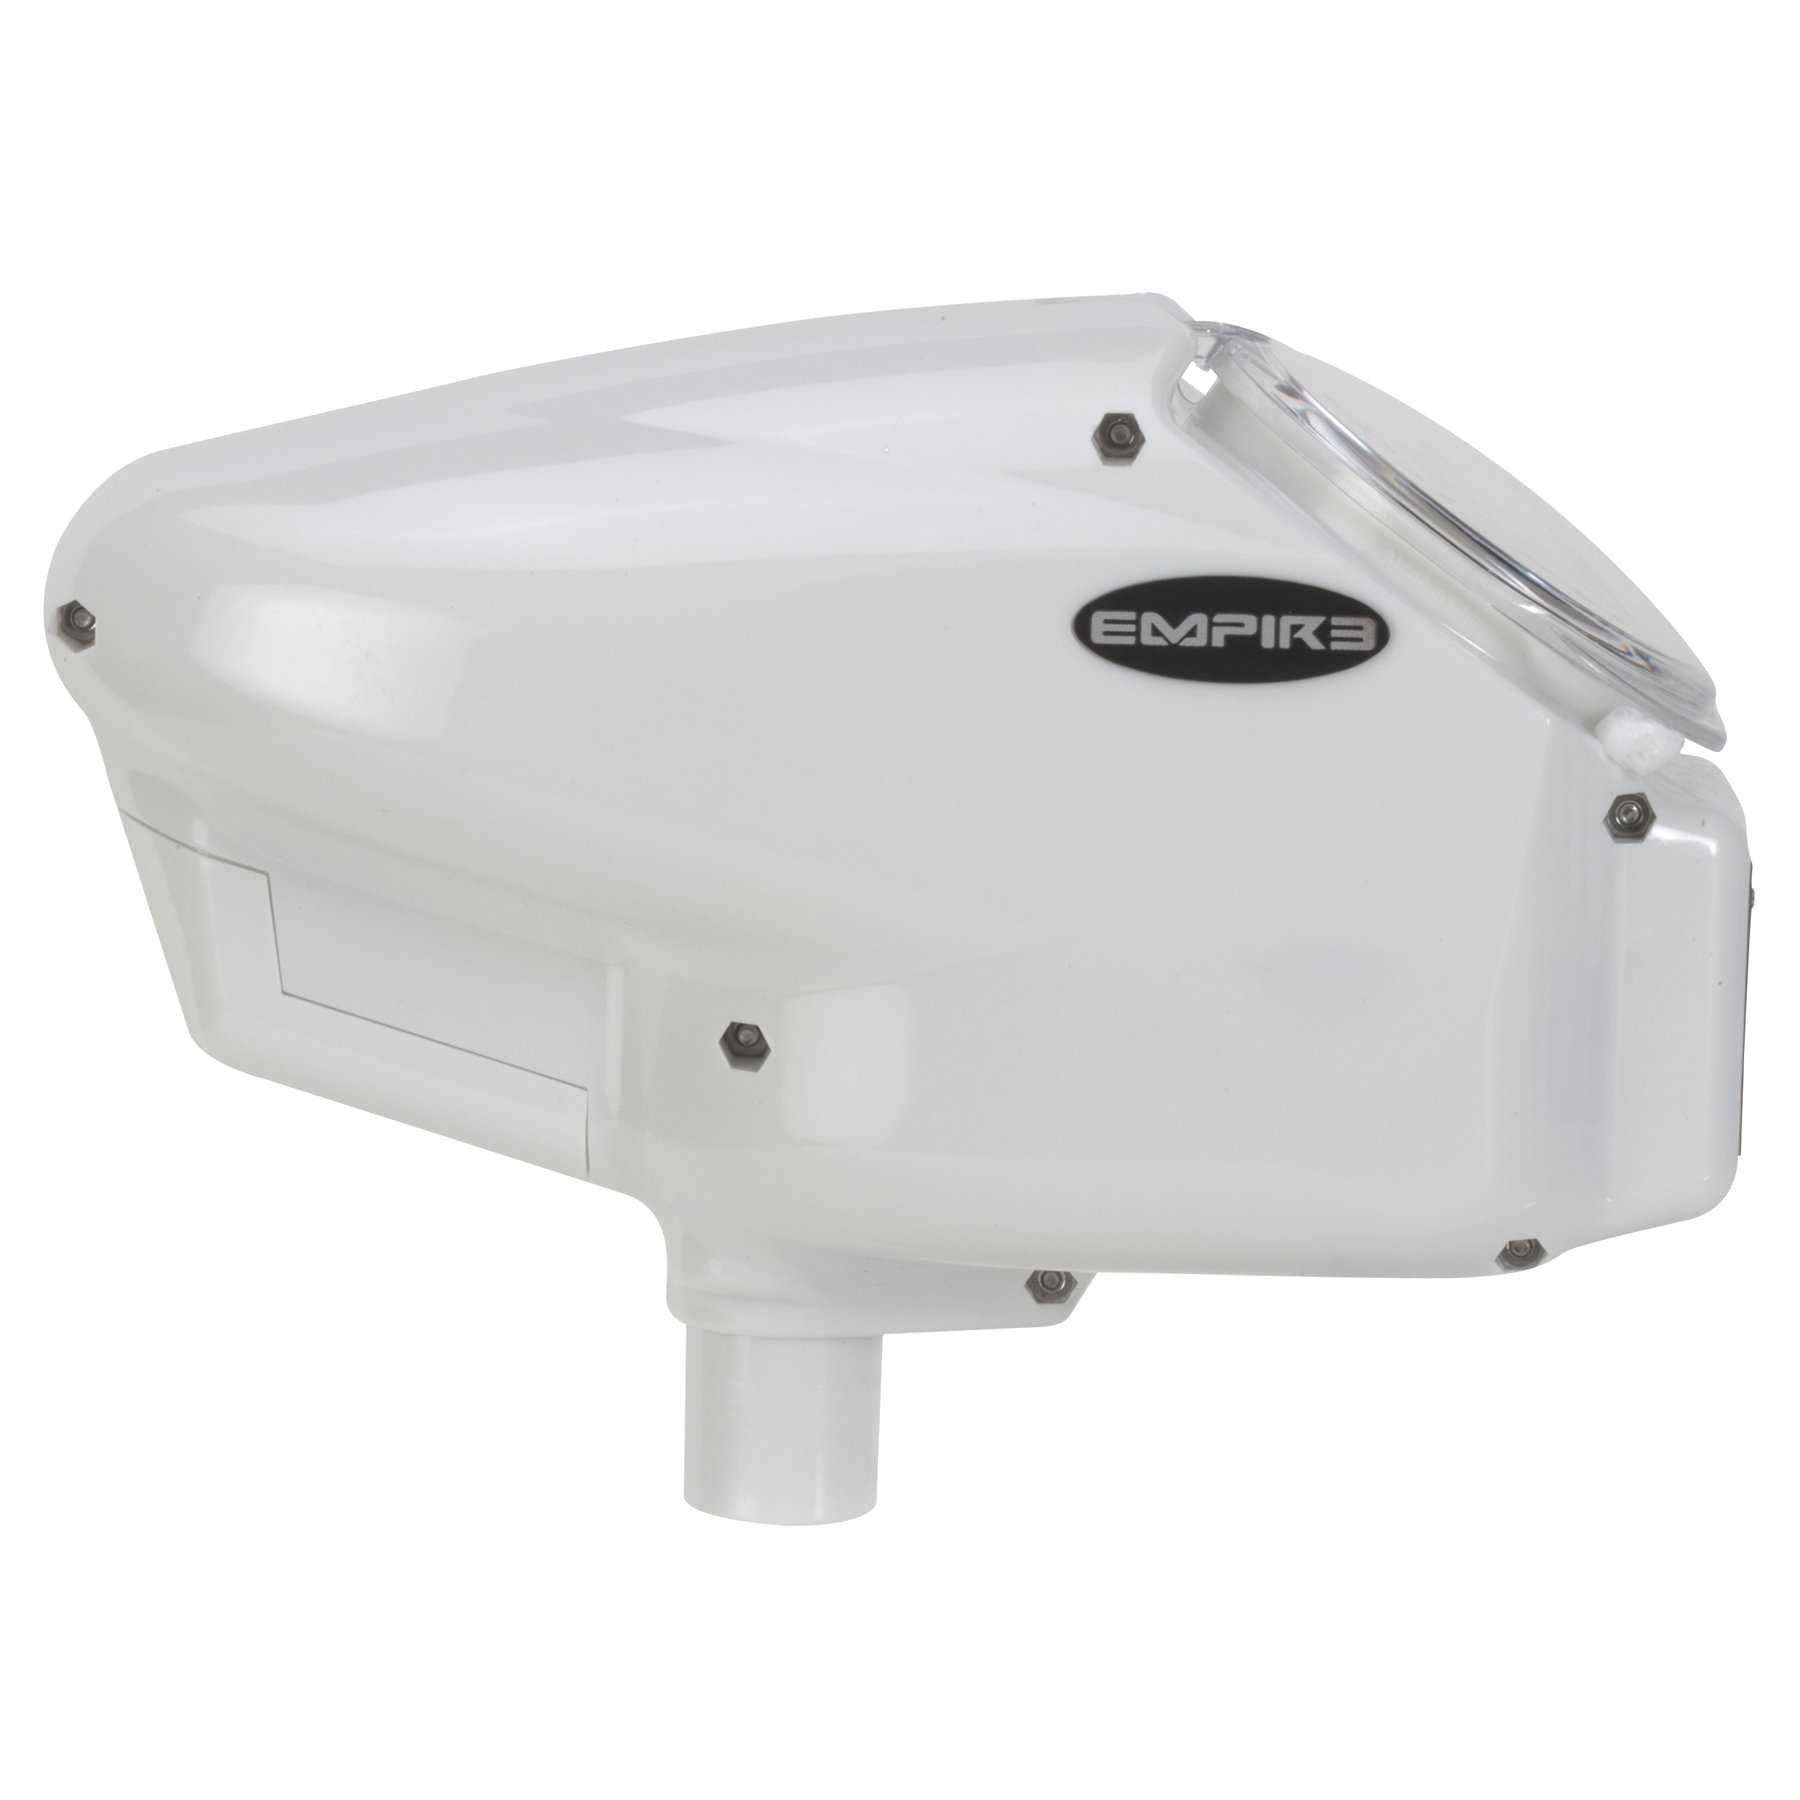 Empire Halo TOO Paintball Loader - SE White by Empire